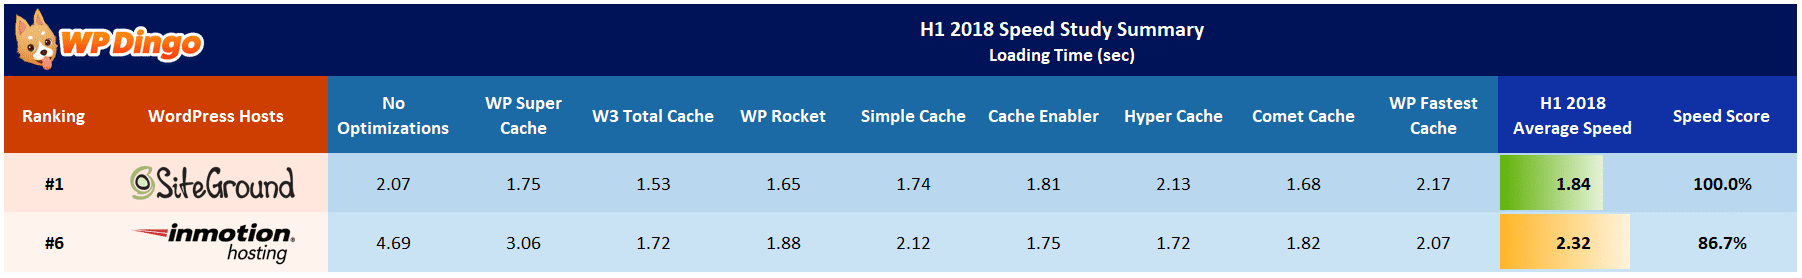 SiteGround vs InMotion Speed Table - Jan 2018 to Jul 2018